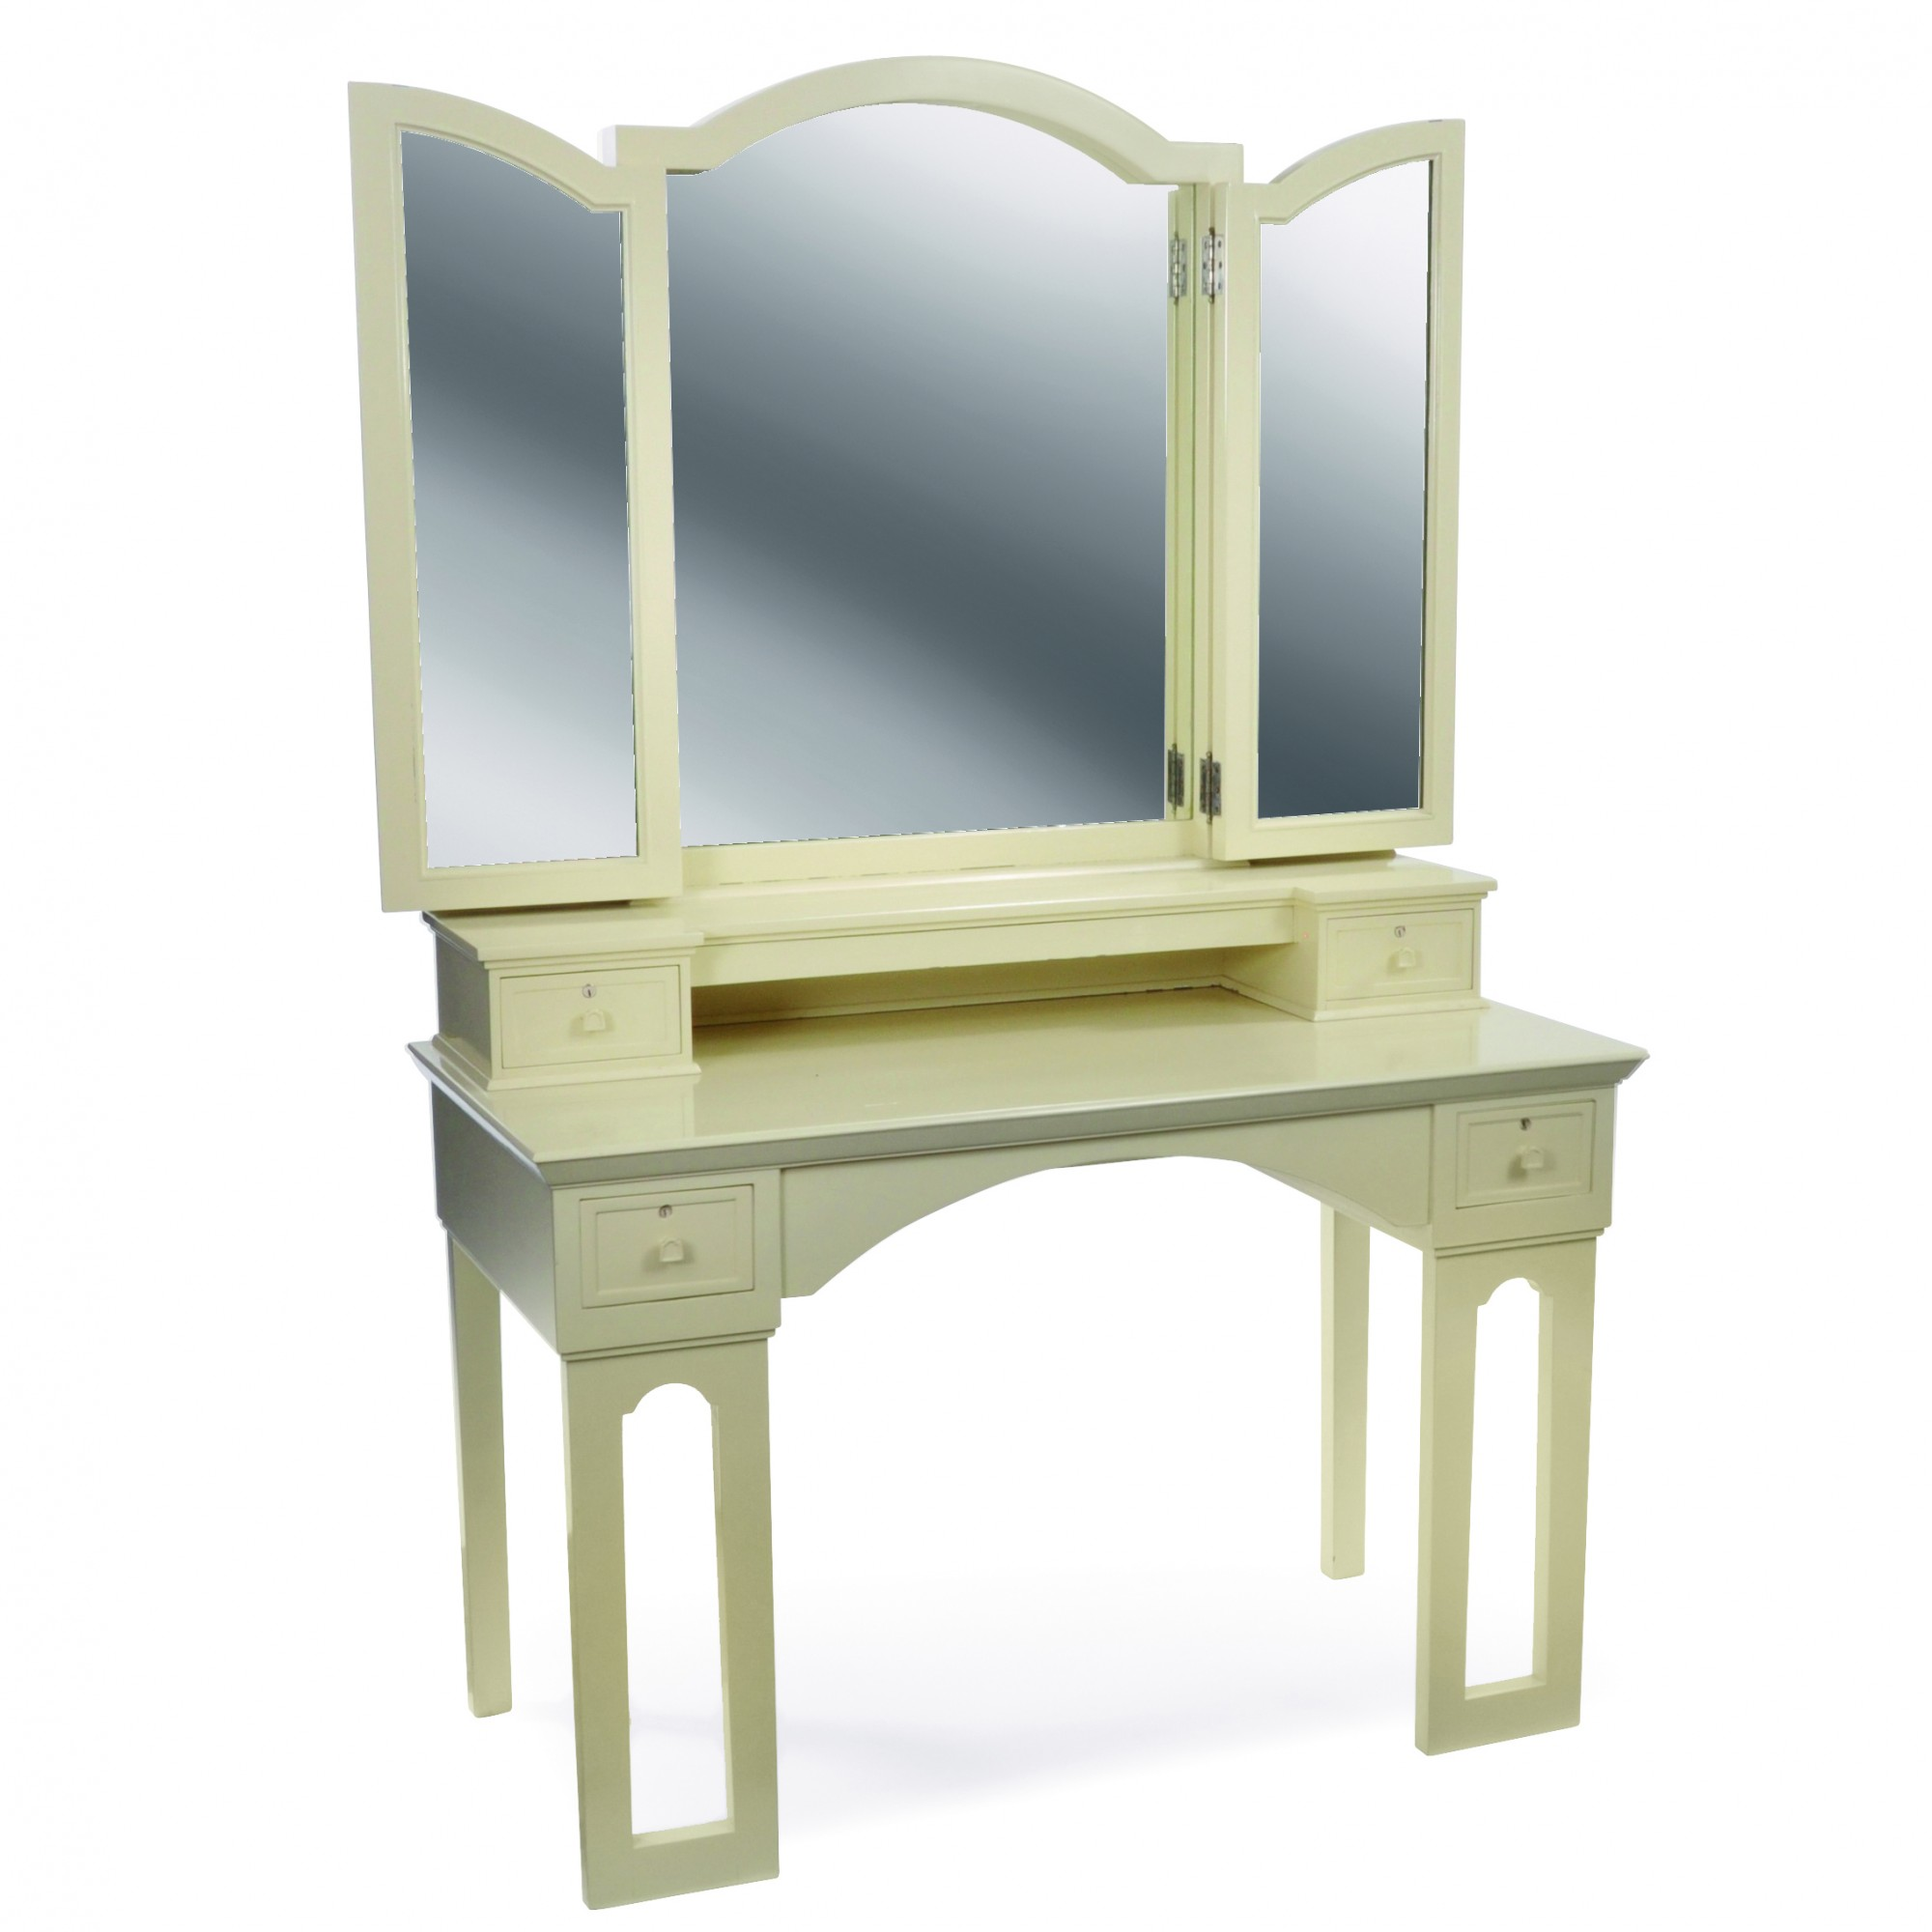 George Washington Maher Vanity